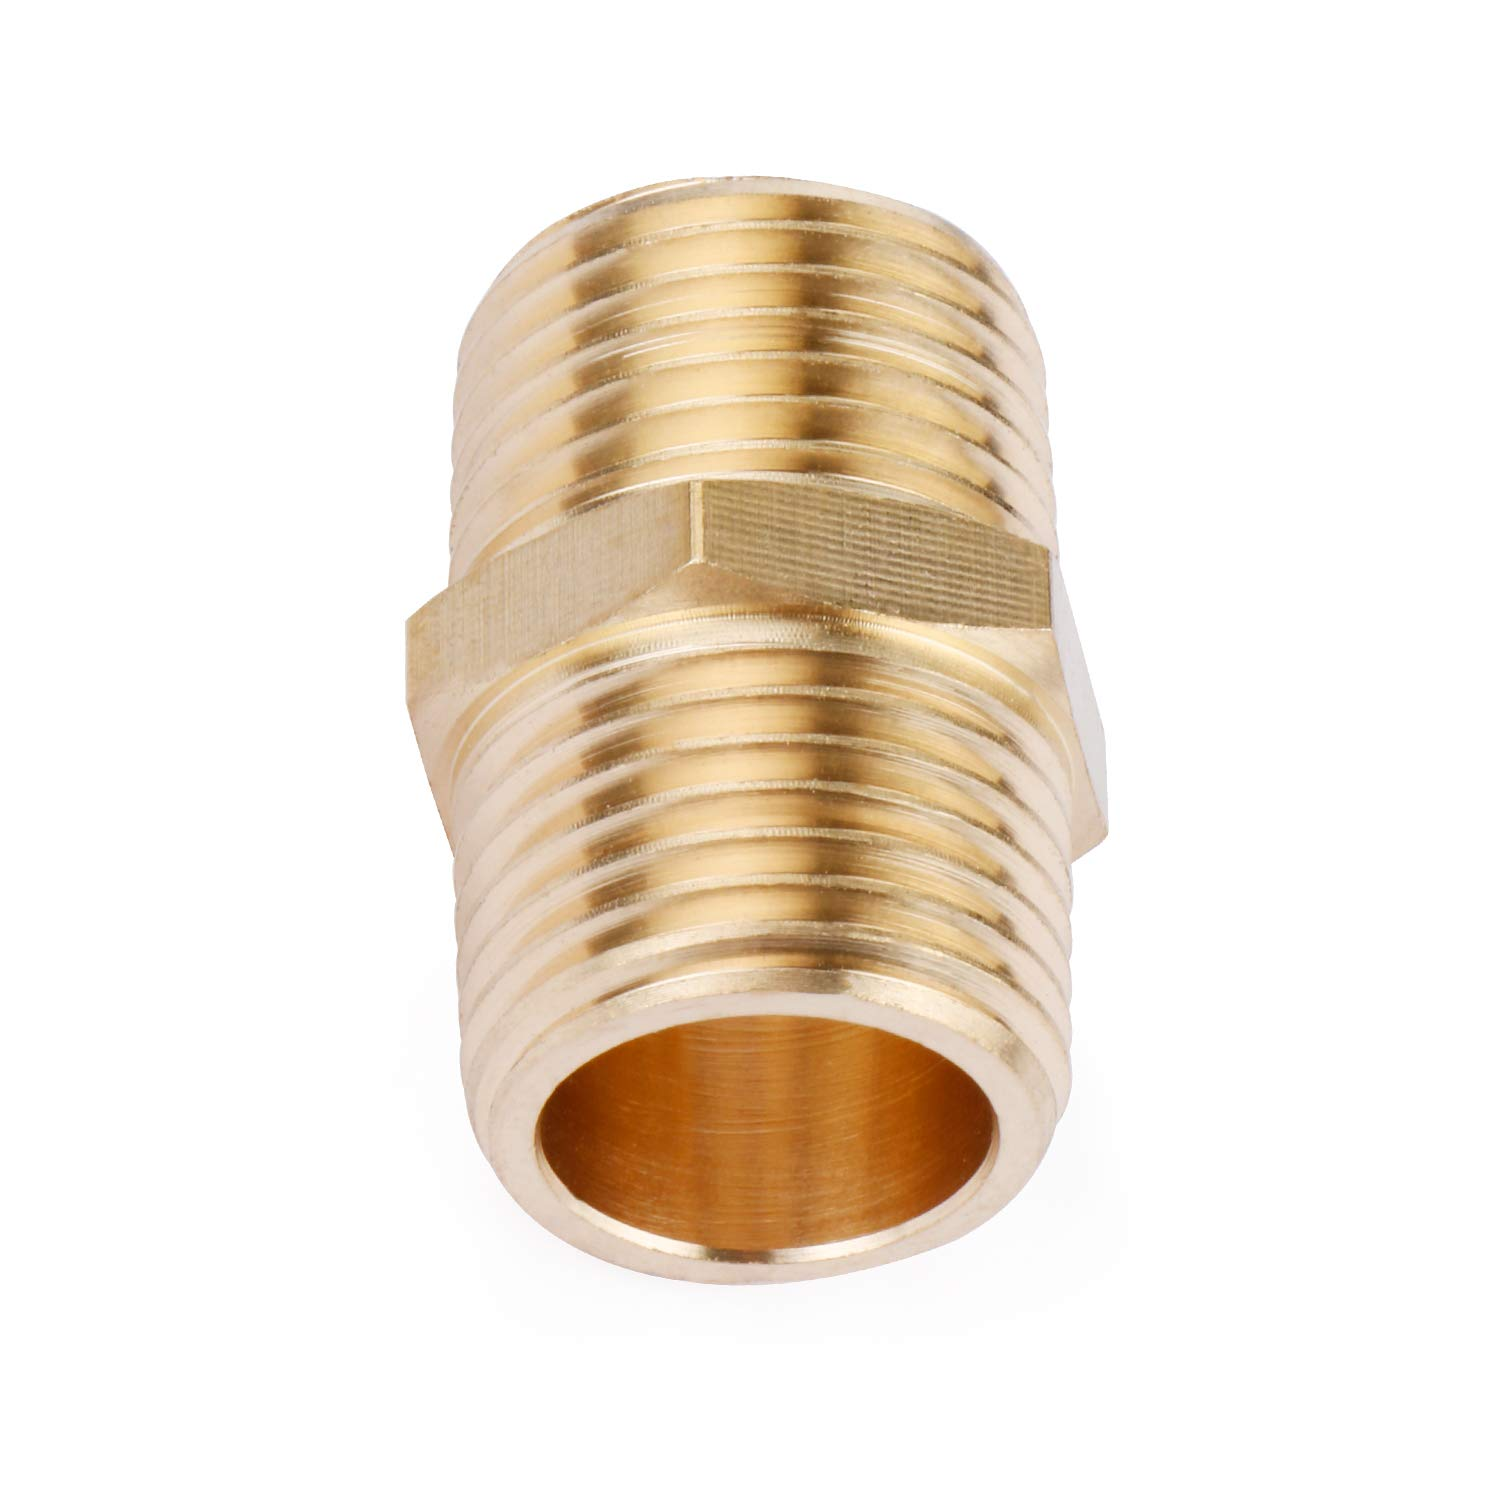 Solid Brass Pipe Fitting 1//2 x 1//2 NPT Male Pipe Adapter Hex Nipple U.S